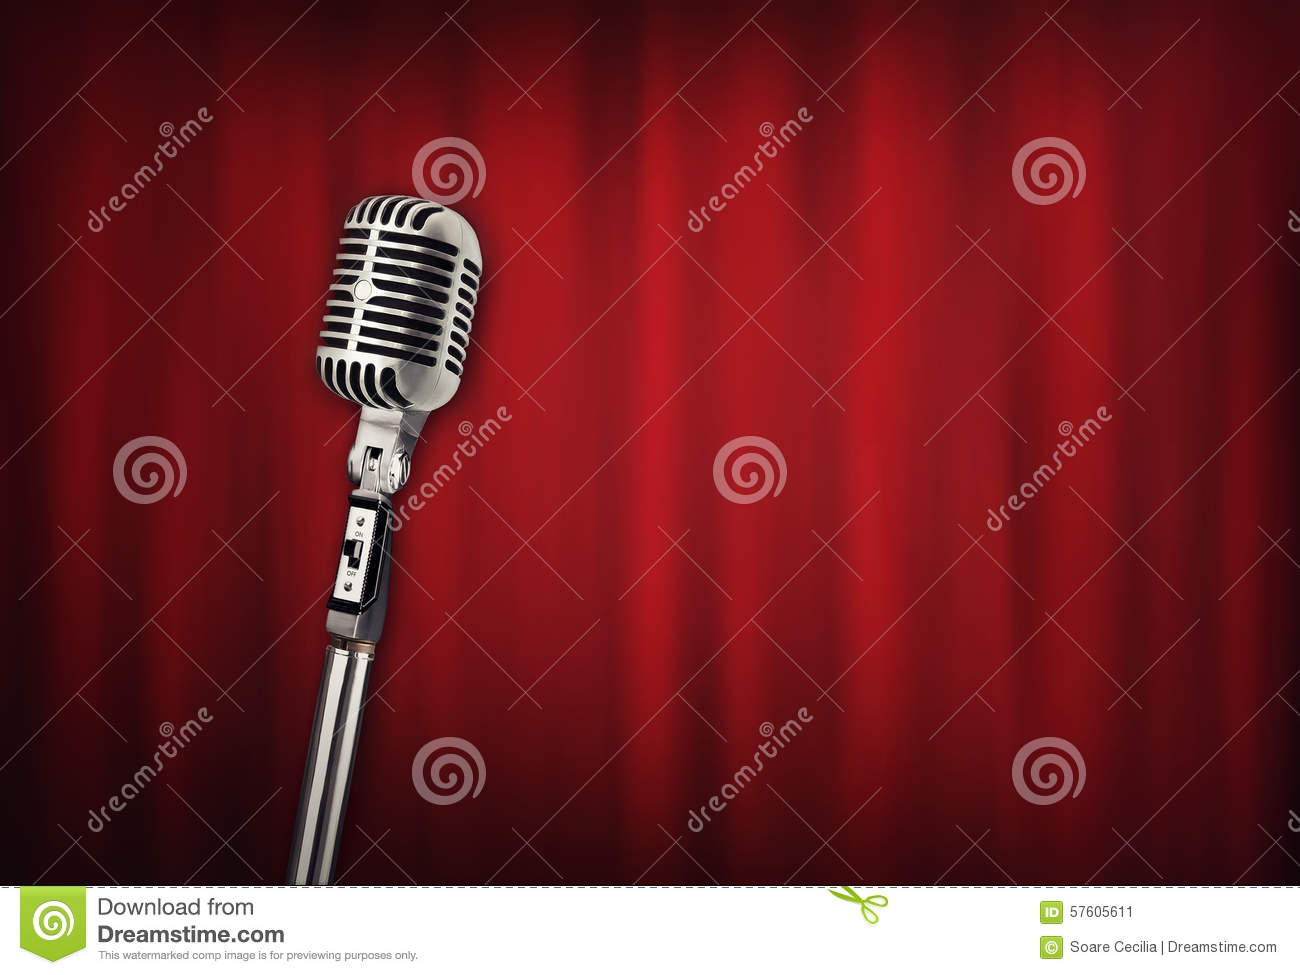 Audio retro microphone with red curtain